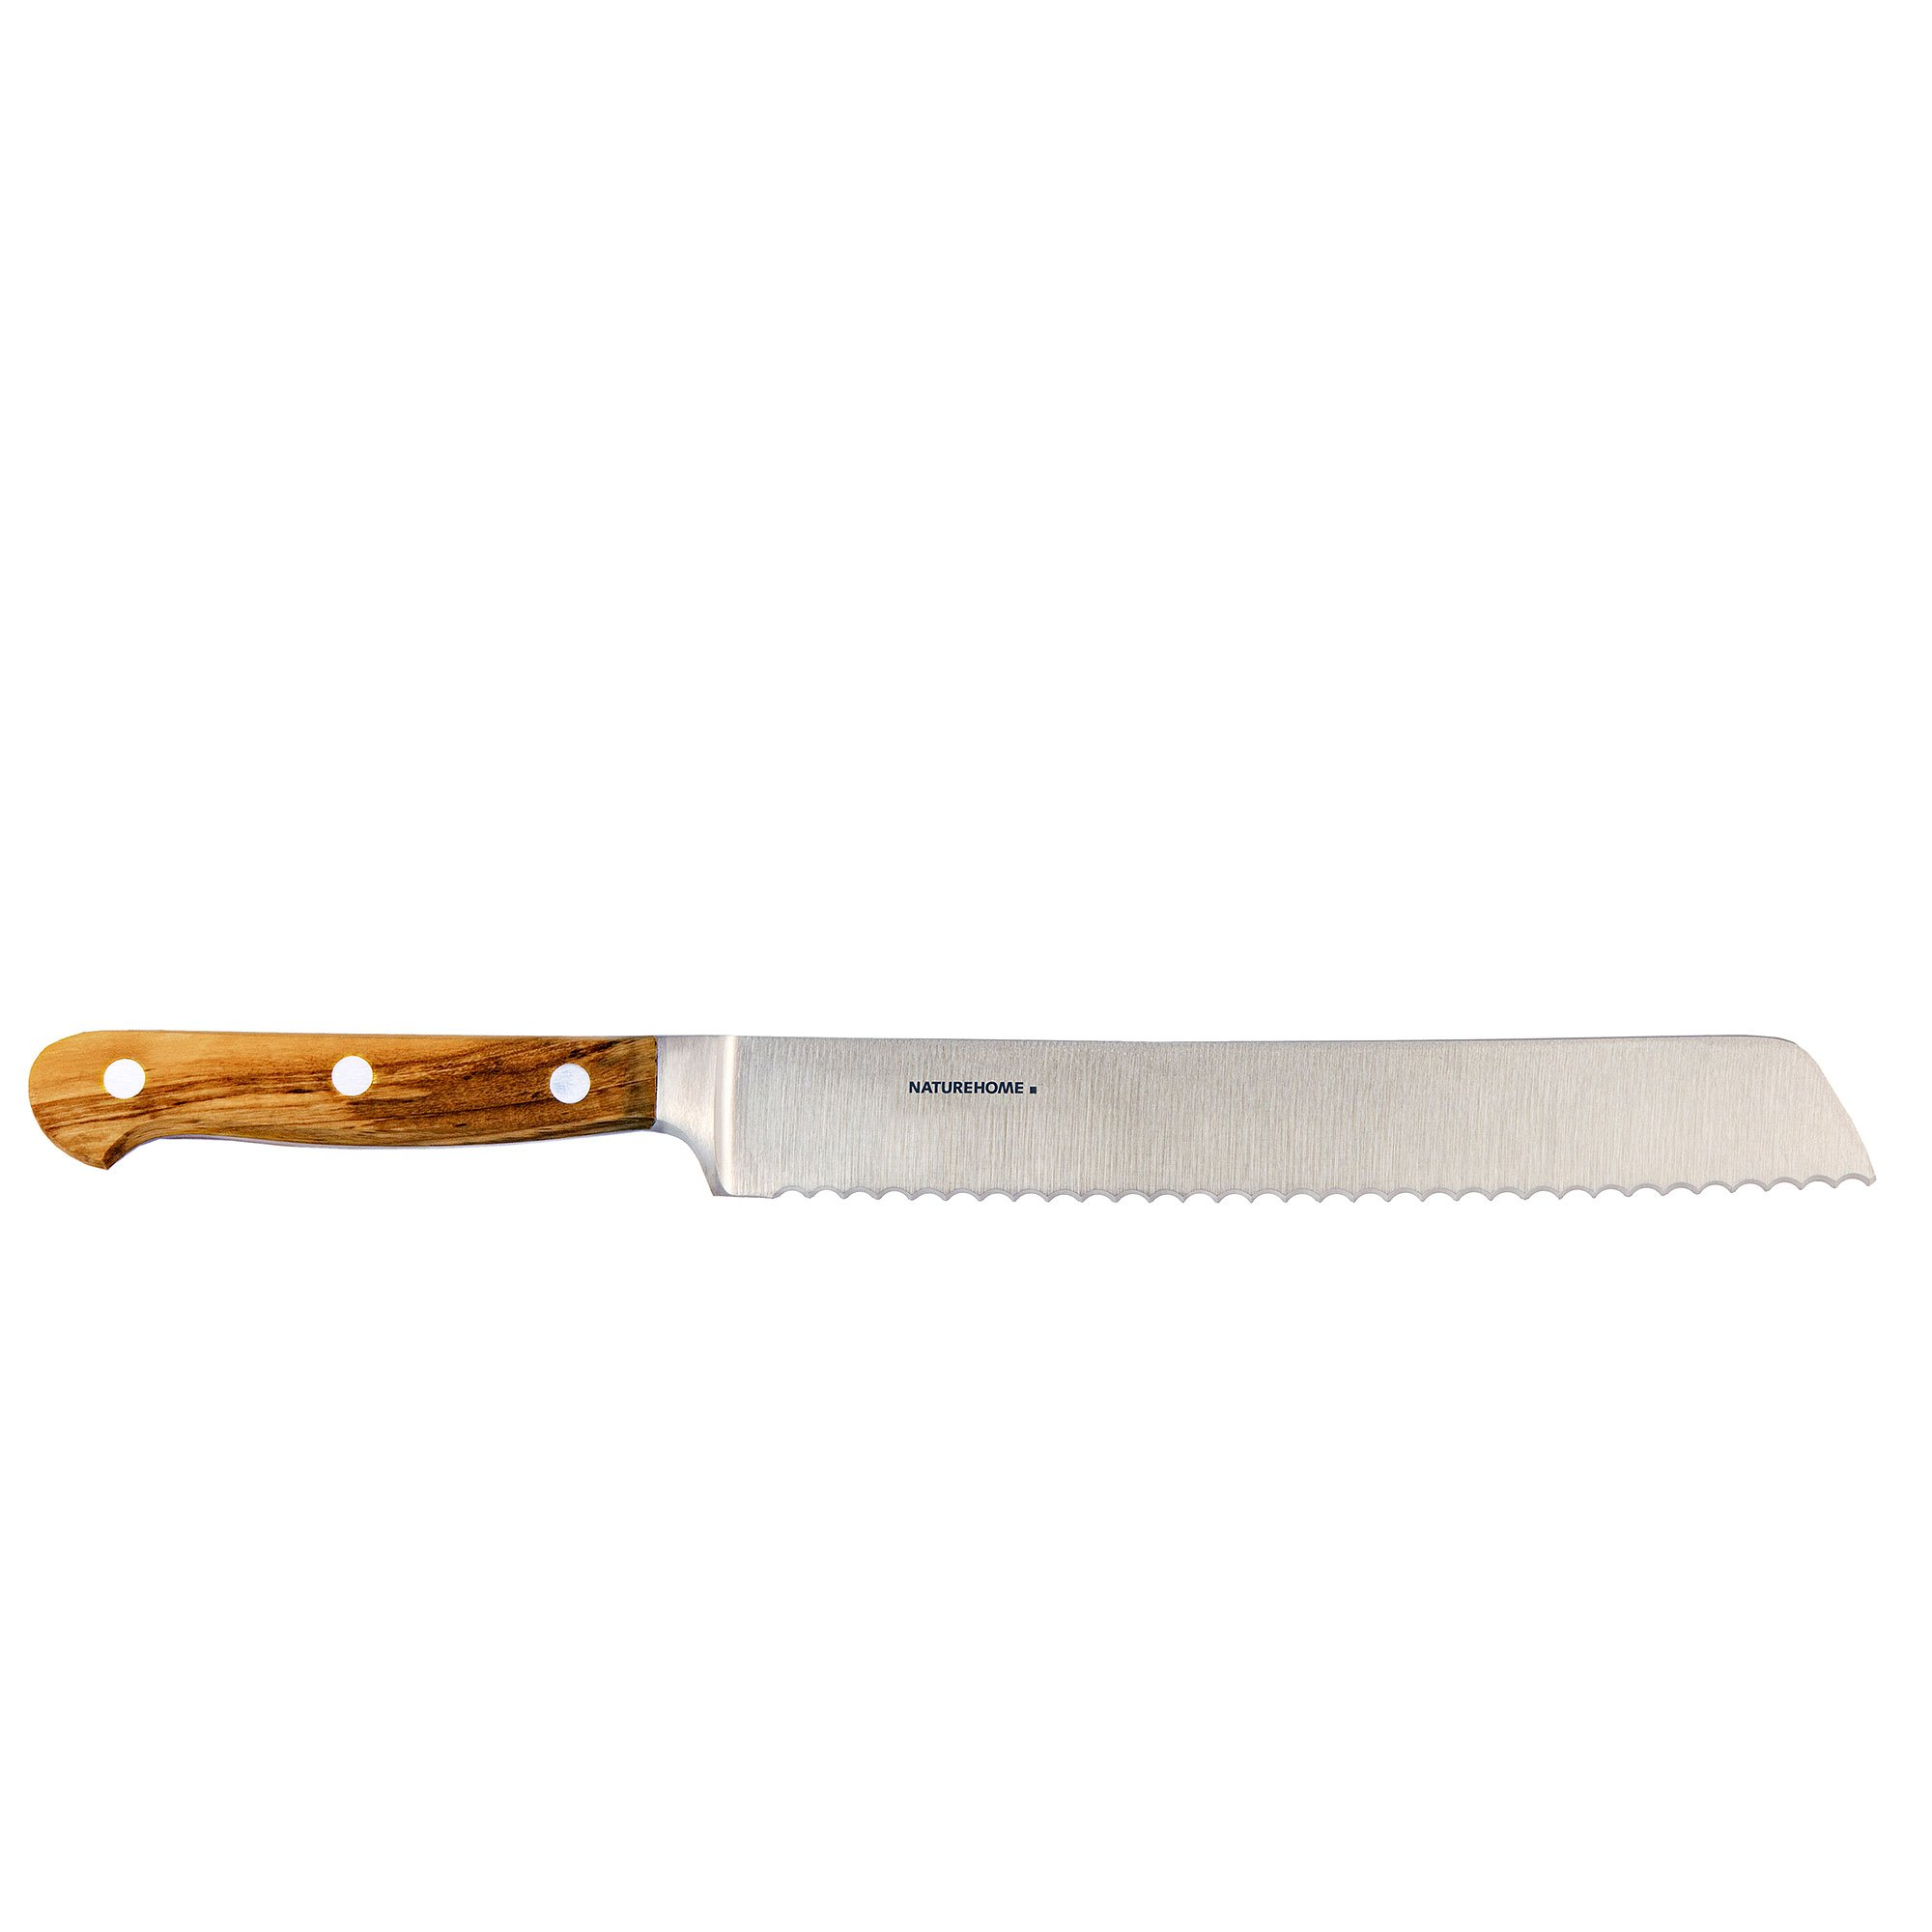 NATUREHOME Bread Knife - Exclusive - Olive Wood Handle - Stainless Steel Giesser Blade 7.9''